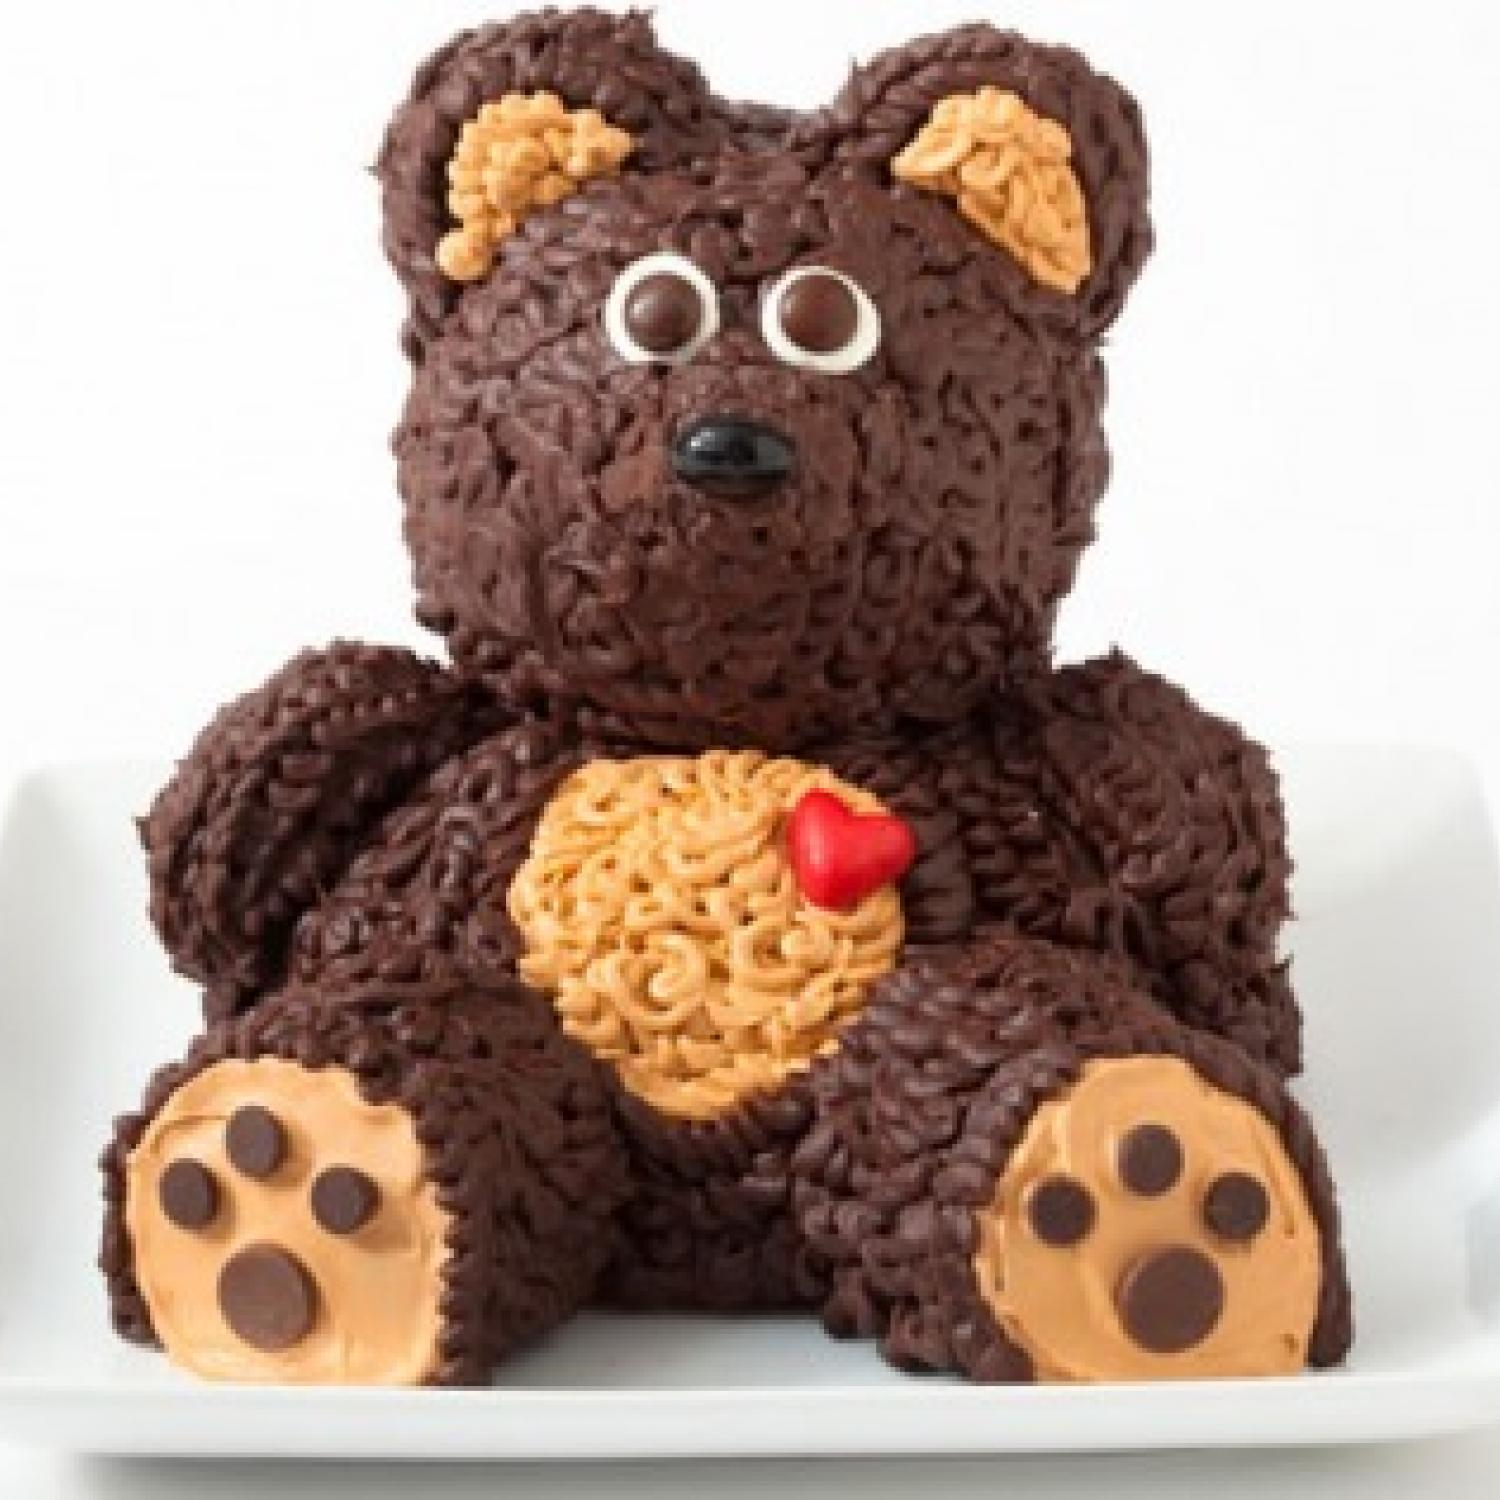 Teddy Bear Birthday Cake Design